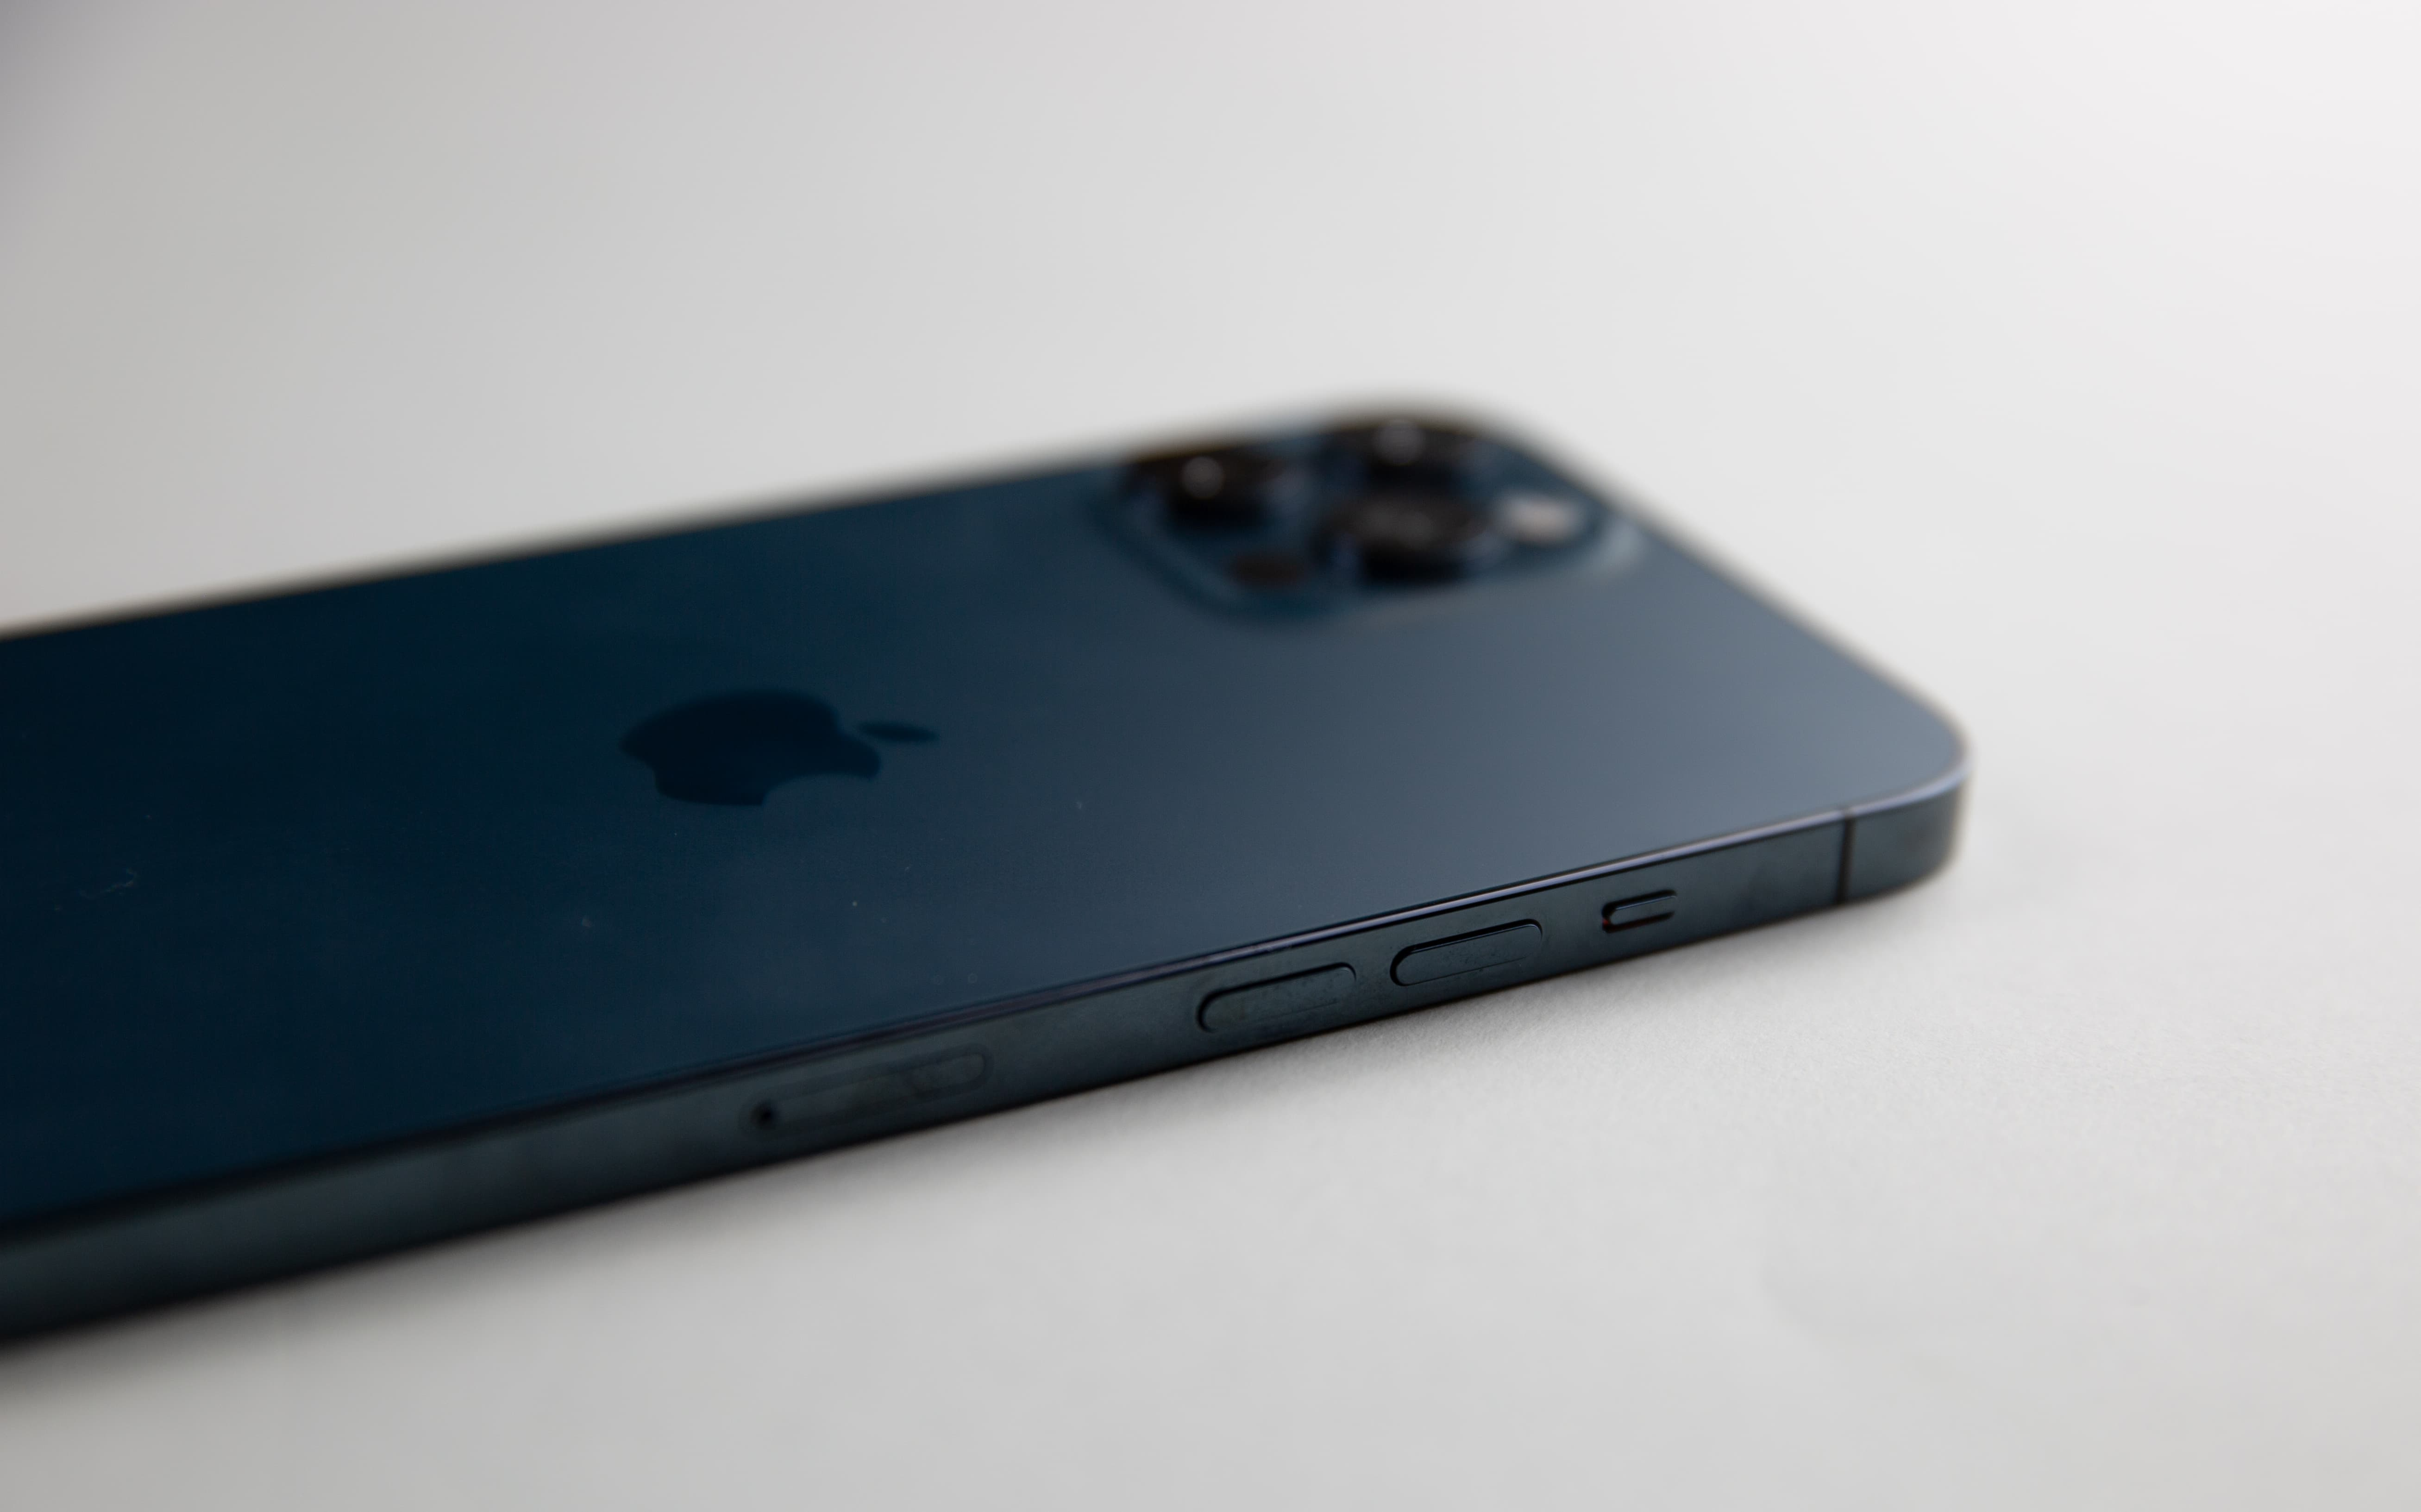 iPhone 12 Pro Max review: This is one gorgeous, and gigantic, iPhone